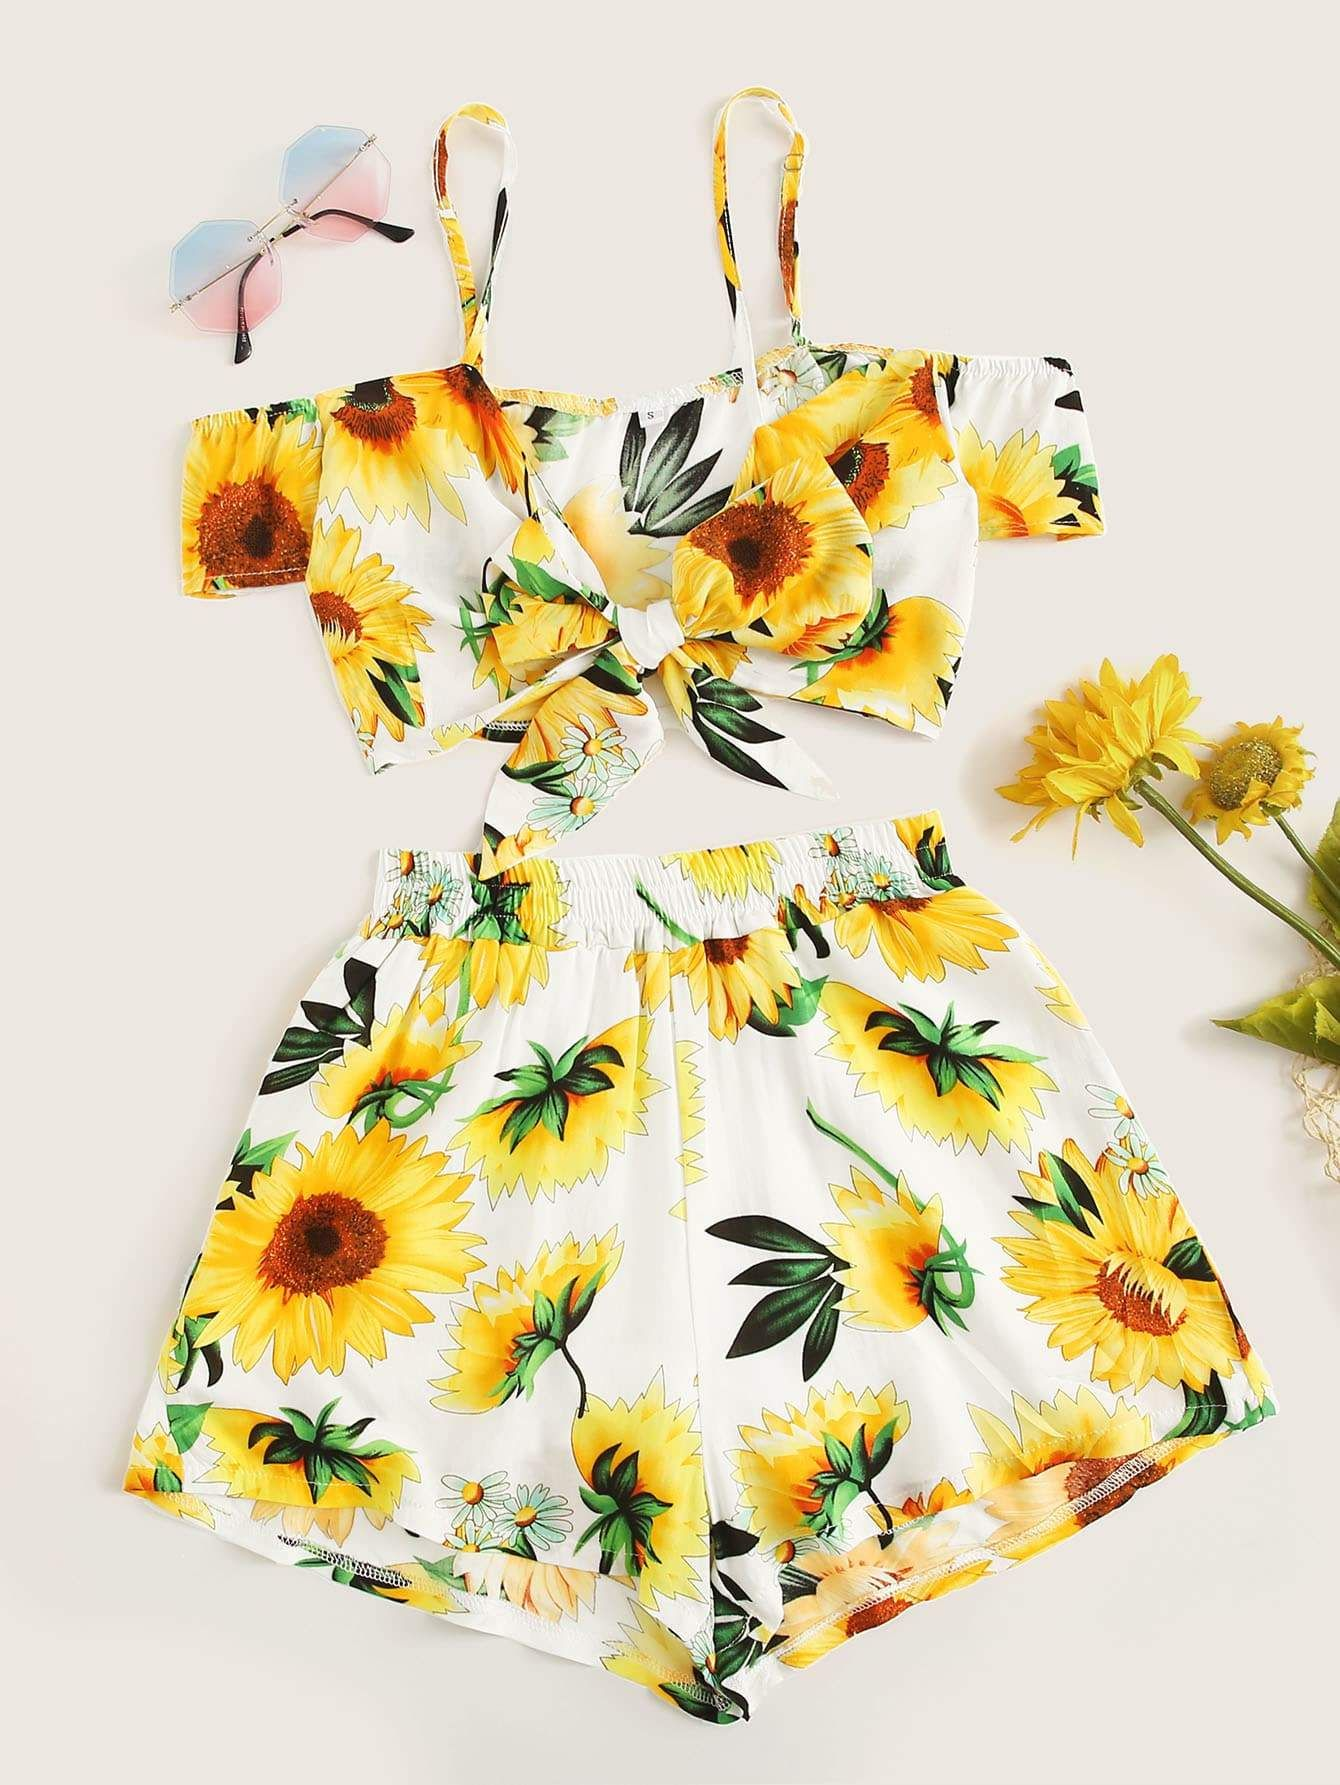 8d3d020a005e5 Sunflower Print Knot Front Cami Top With Shorts - Popviva #summer #year  #fall #spring #season #winter #daylight #summertime #vacations #holiday  #autumn ...